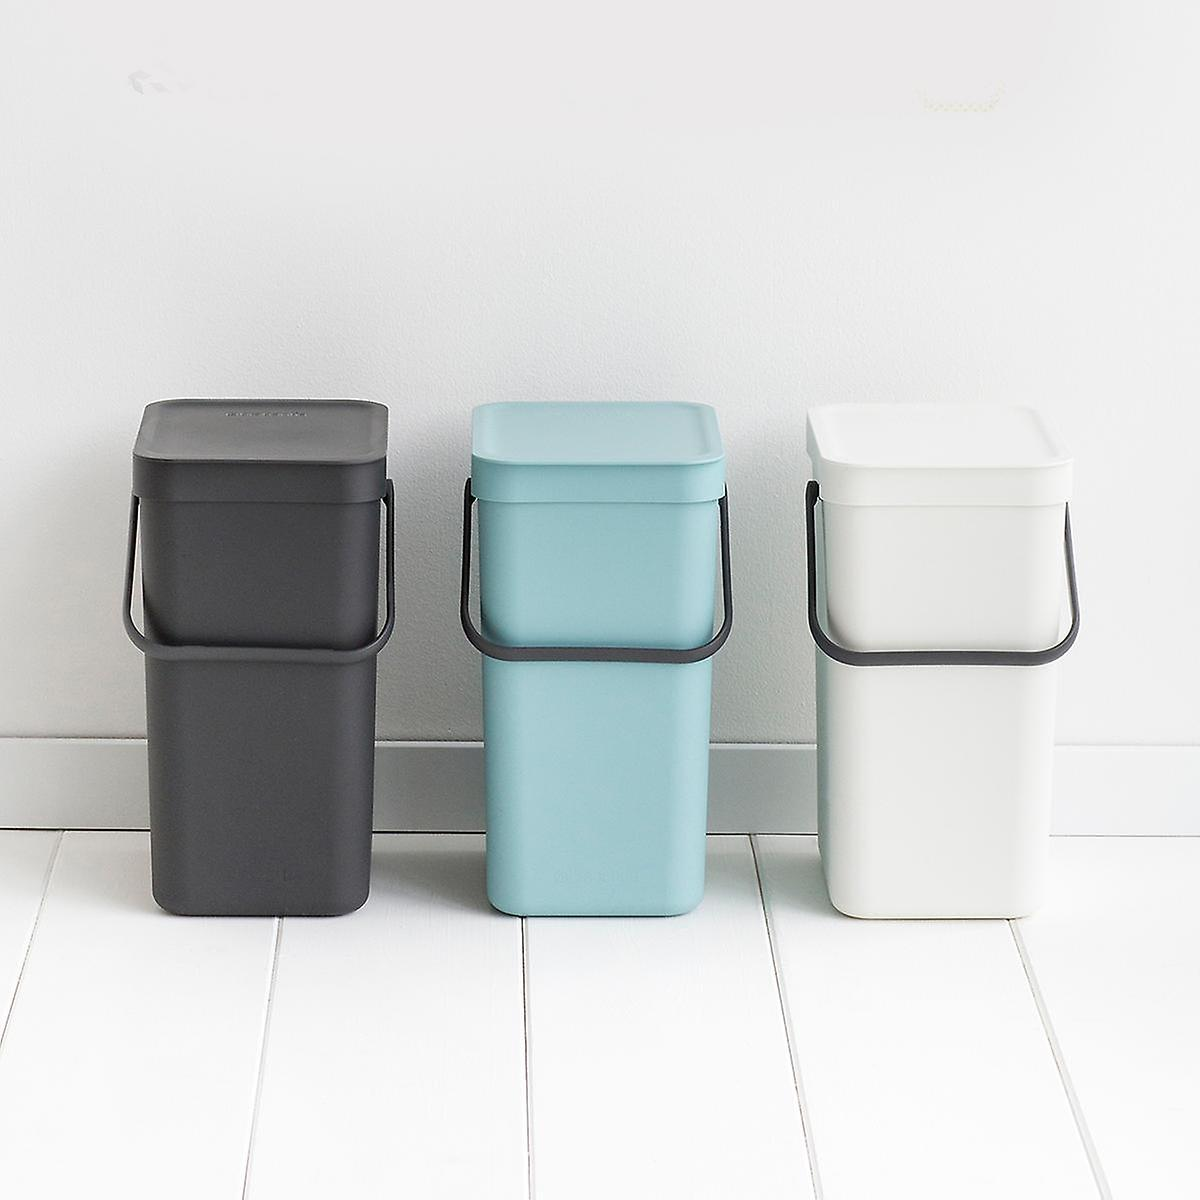 Brabantia Sort & Go Recycling Bins | The Container Store